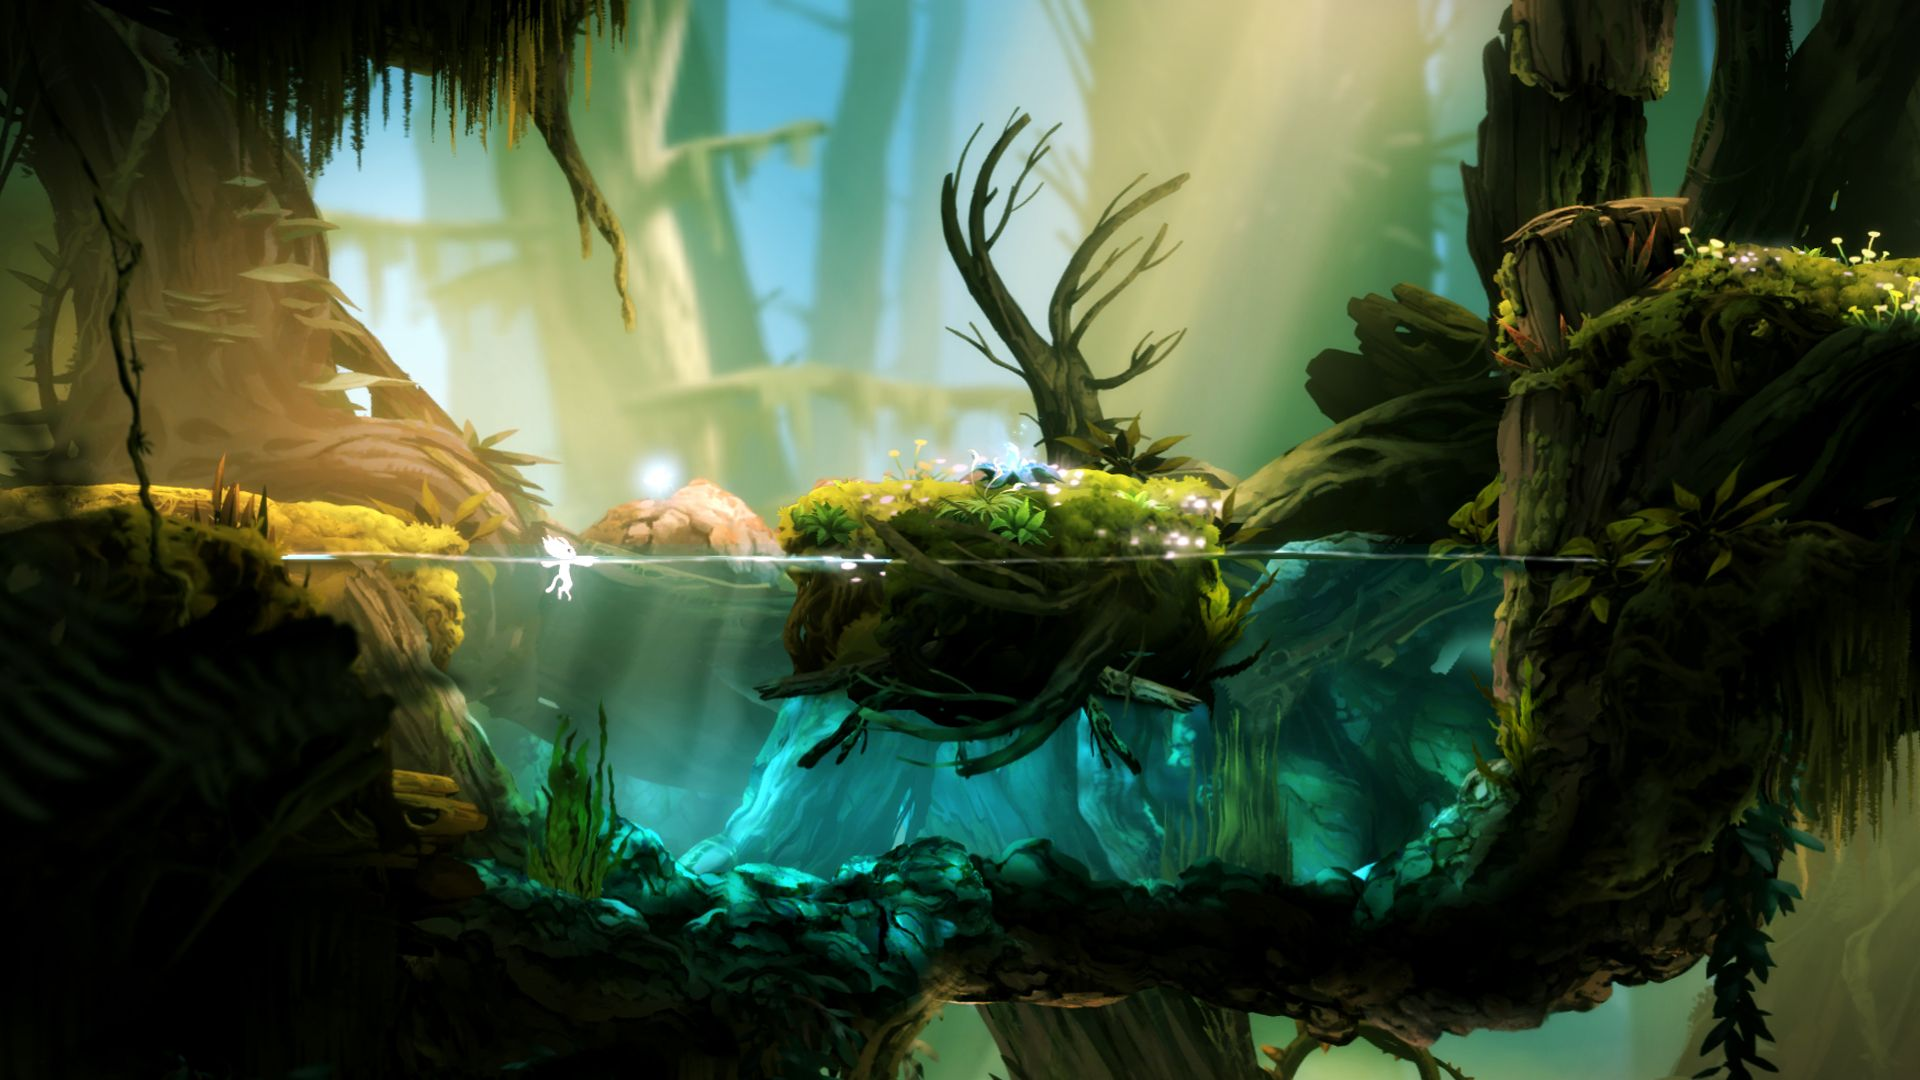 Ori And The Blind Forest 1920x1080 Need Iphone 6s Plus Wallpaper Background For Iphone6splus Fo Forest Games Environment Concept Art Forest Wallpaper